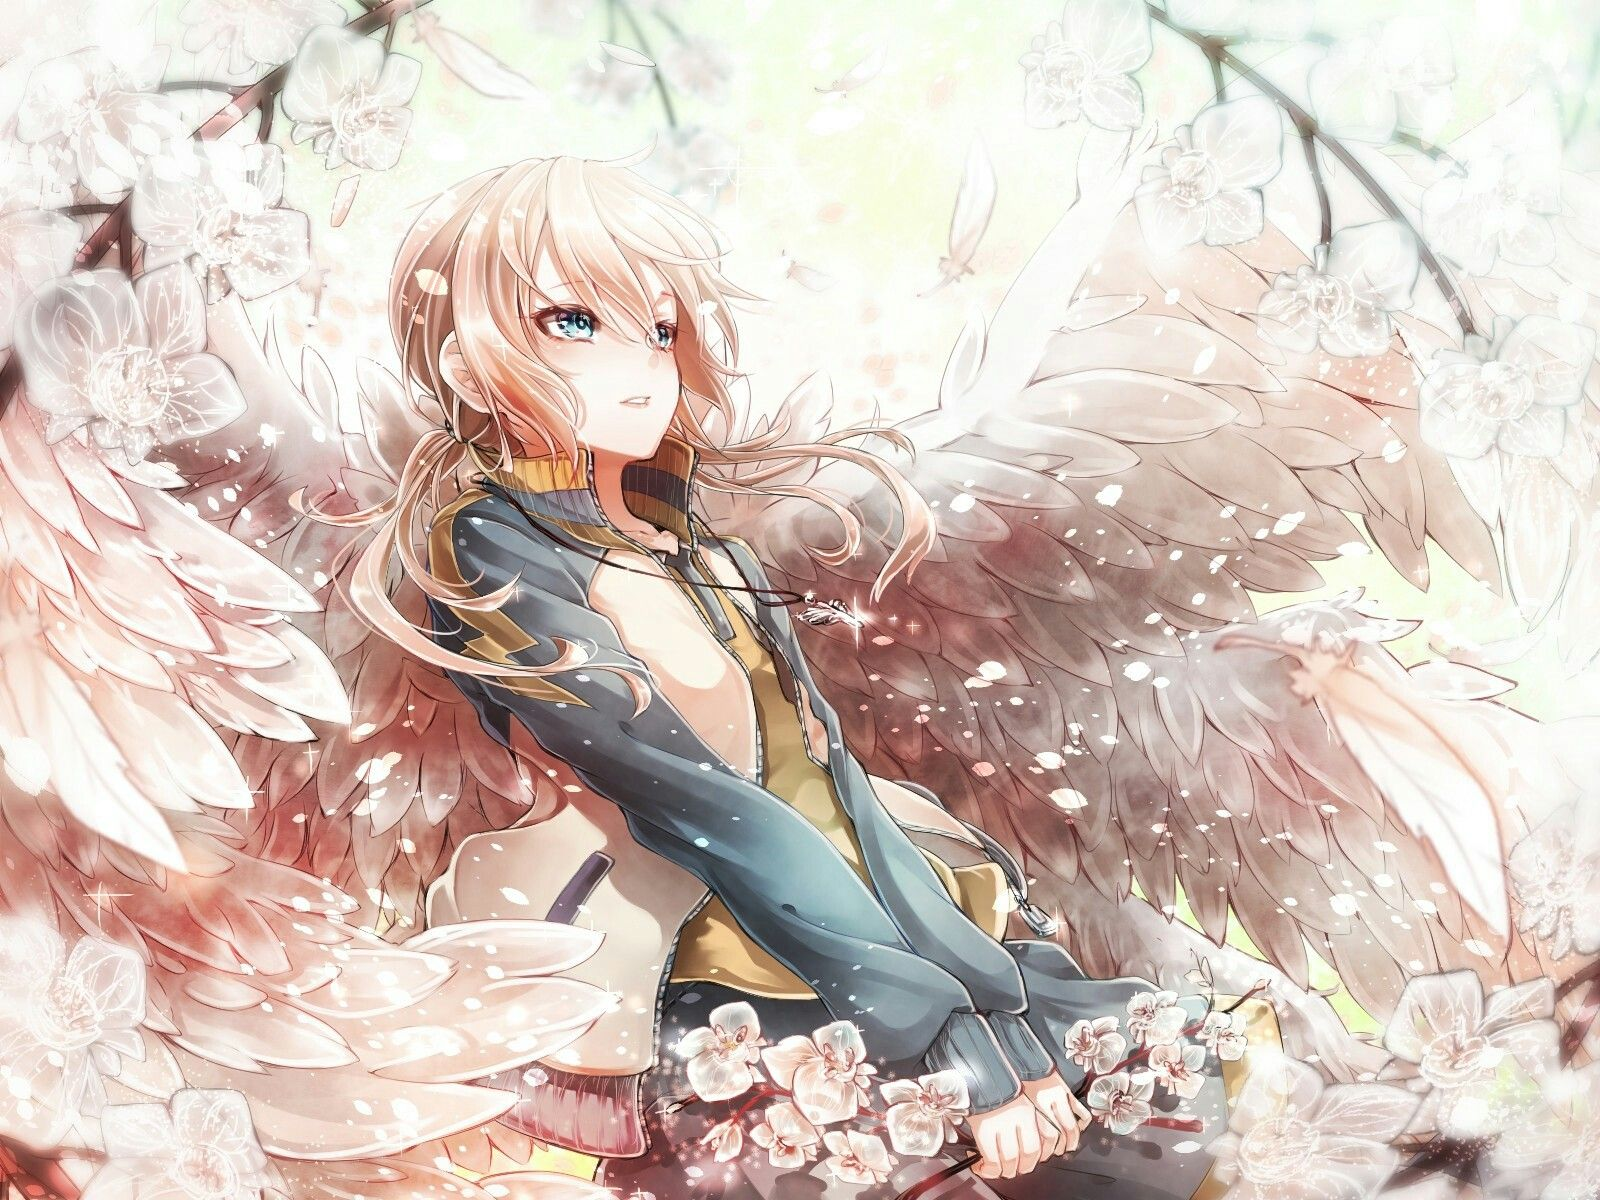 Anime girl with wings niceee picturee♡♡